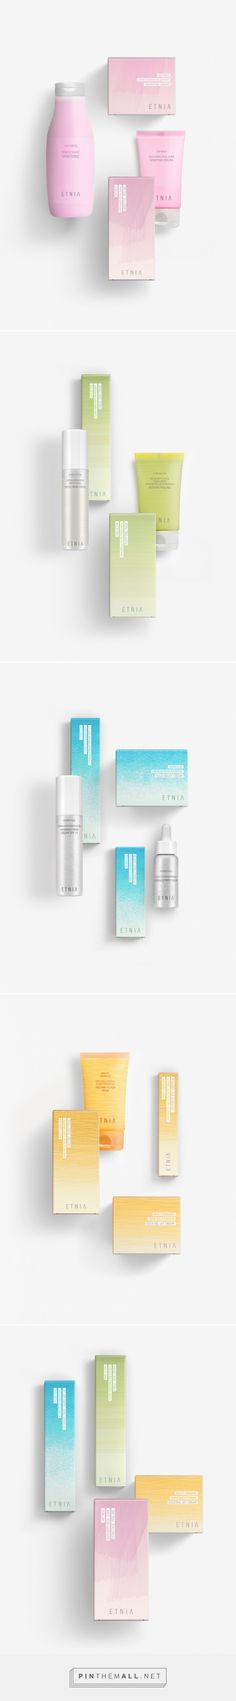 Etnia Skin Care Packaging by Lavernia and Cienfuegos | Fivestar Branding – Design and Branding Agency & Inspiration Gallery